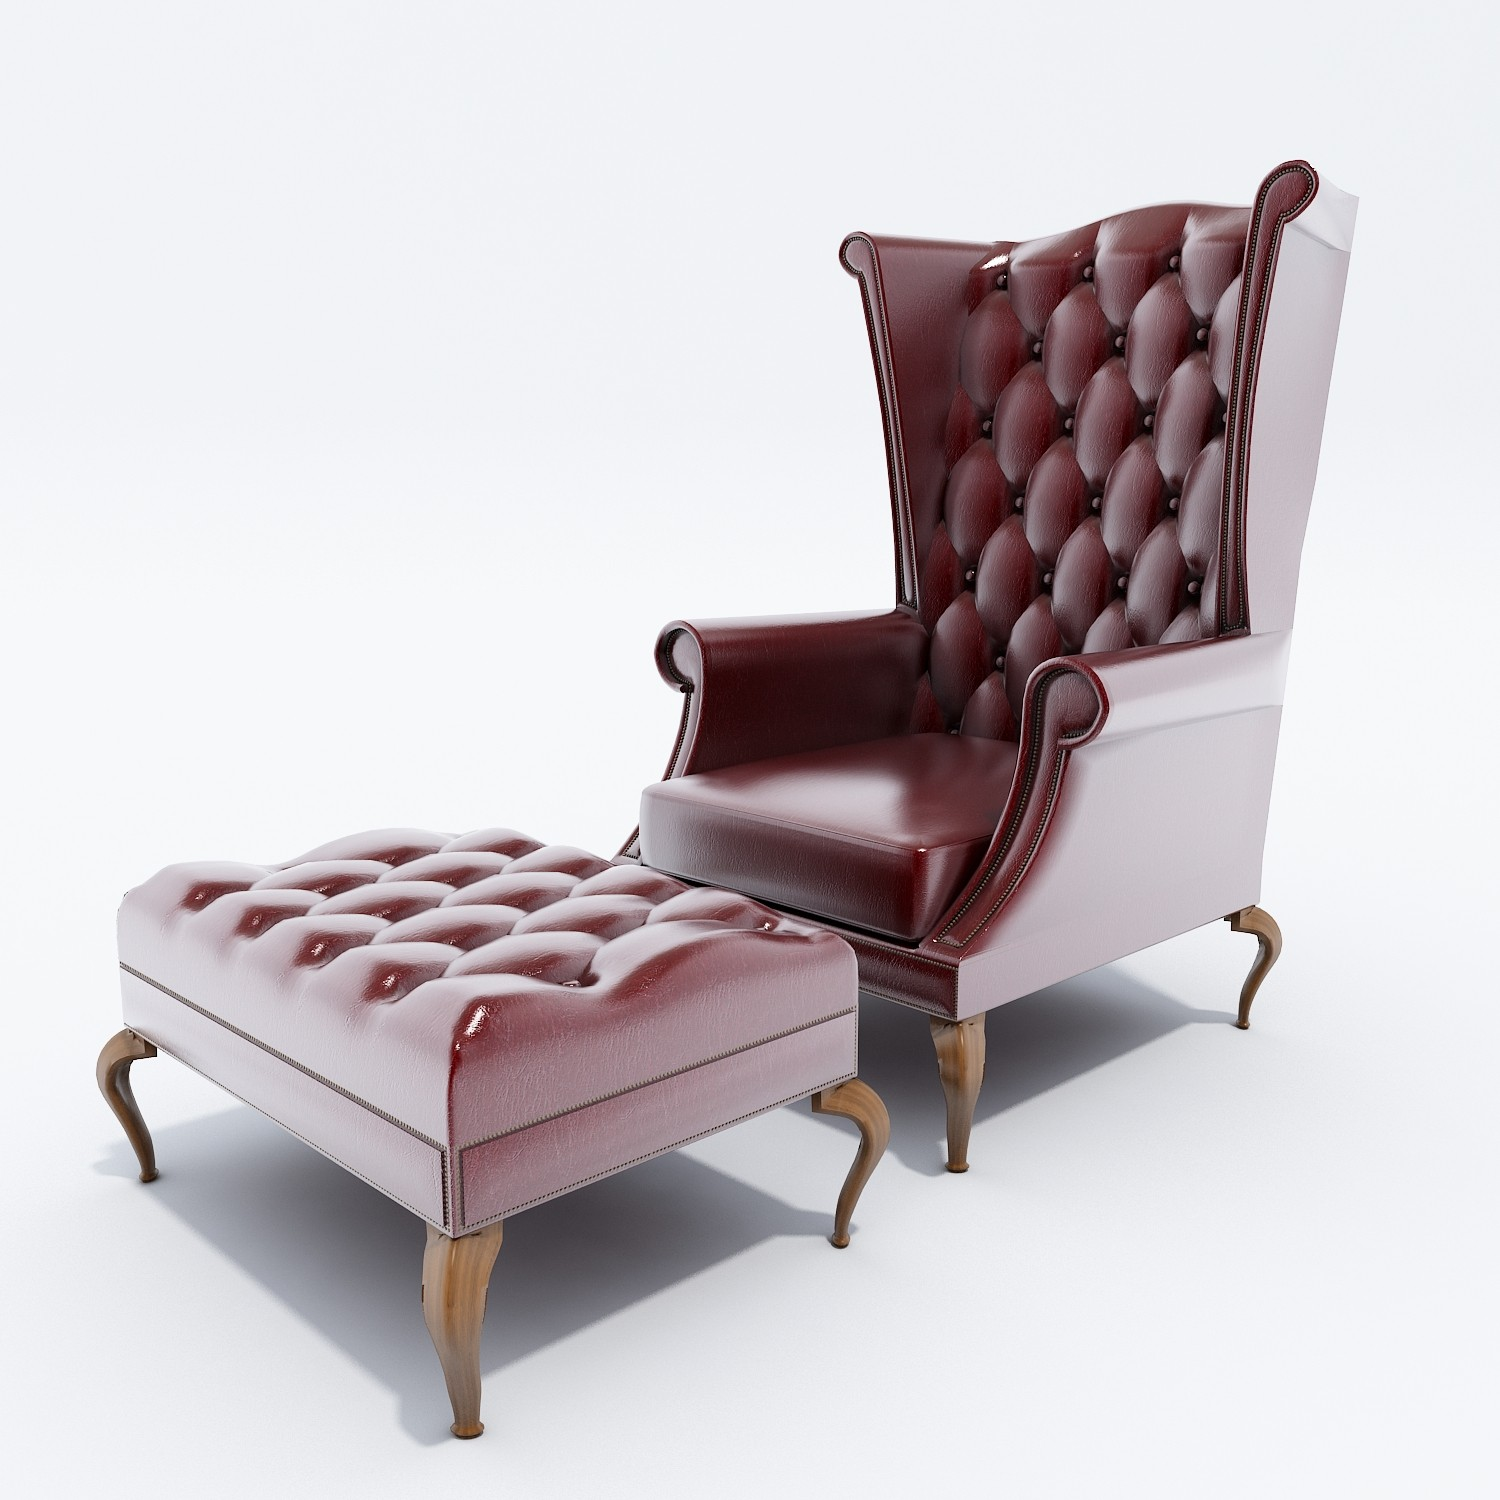 Luxury Queen Anne Chair (View 3 of 11)